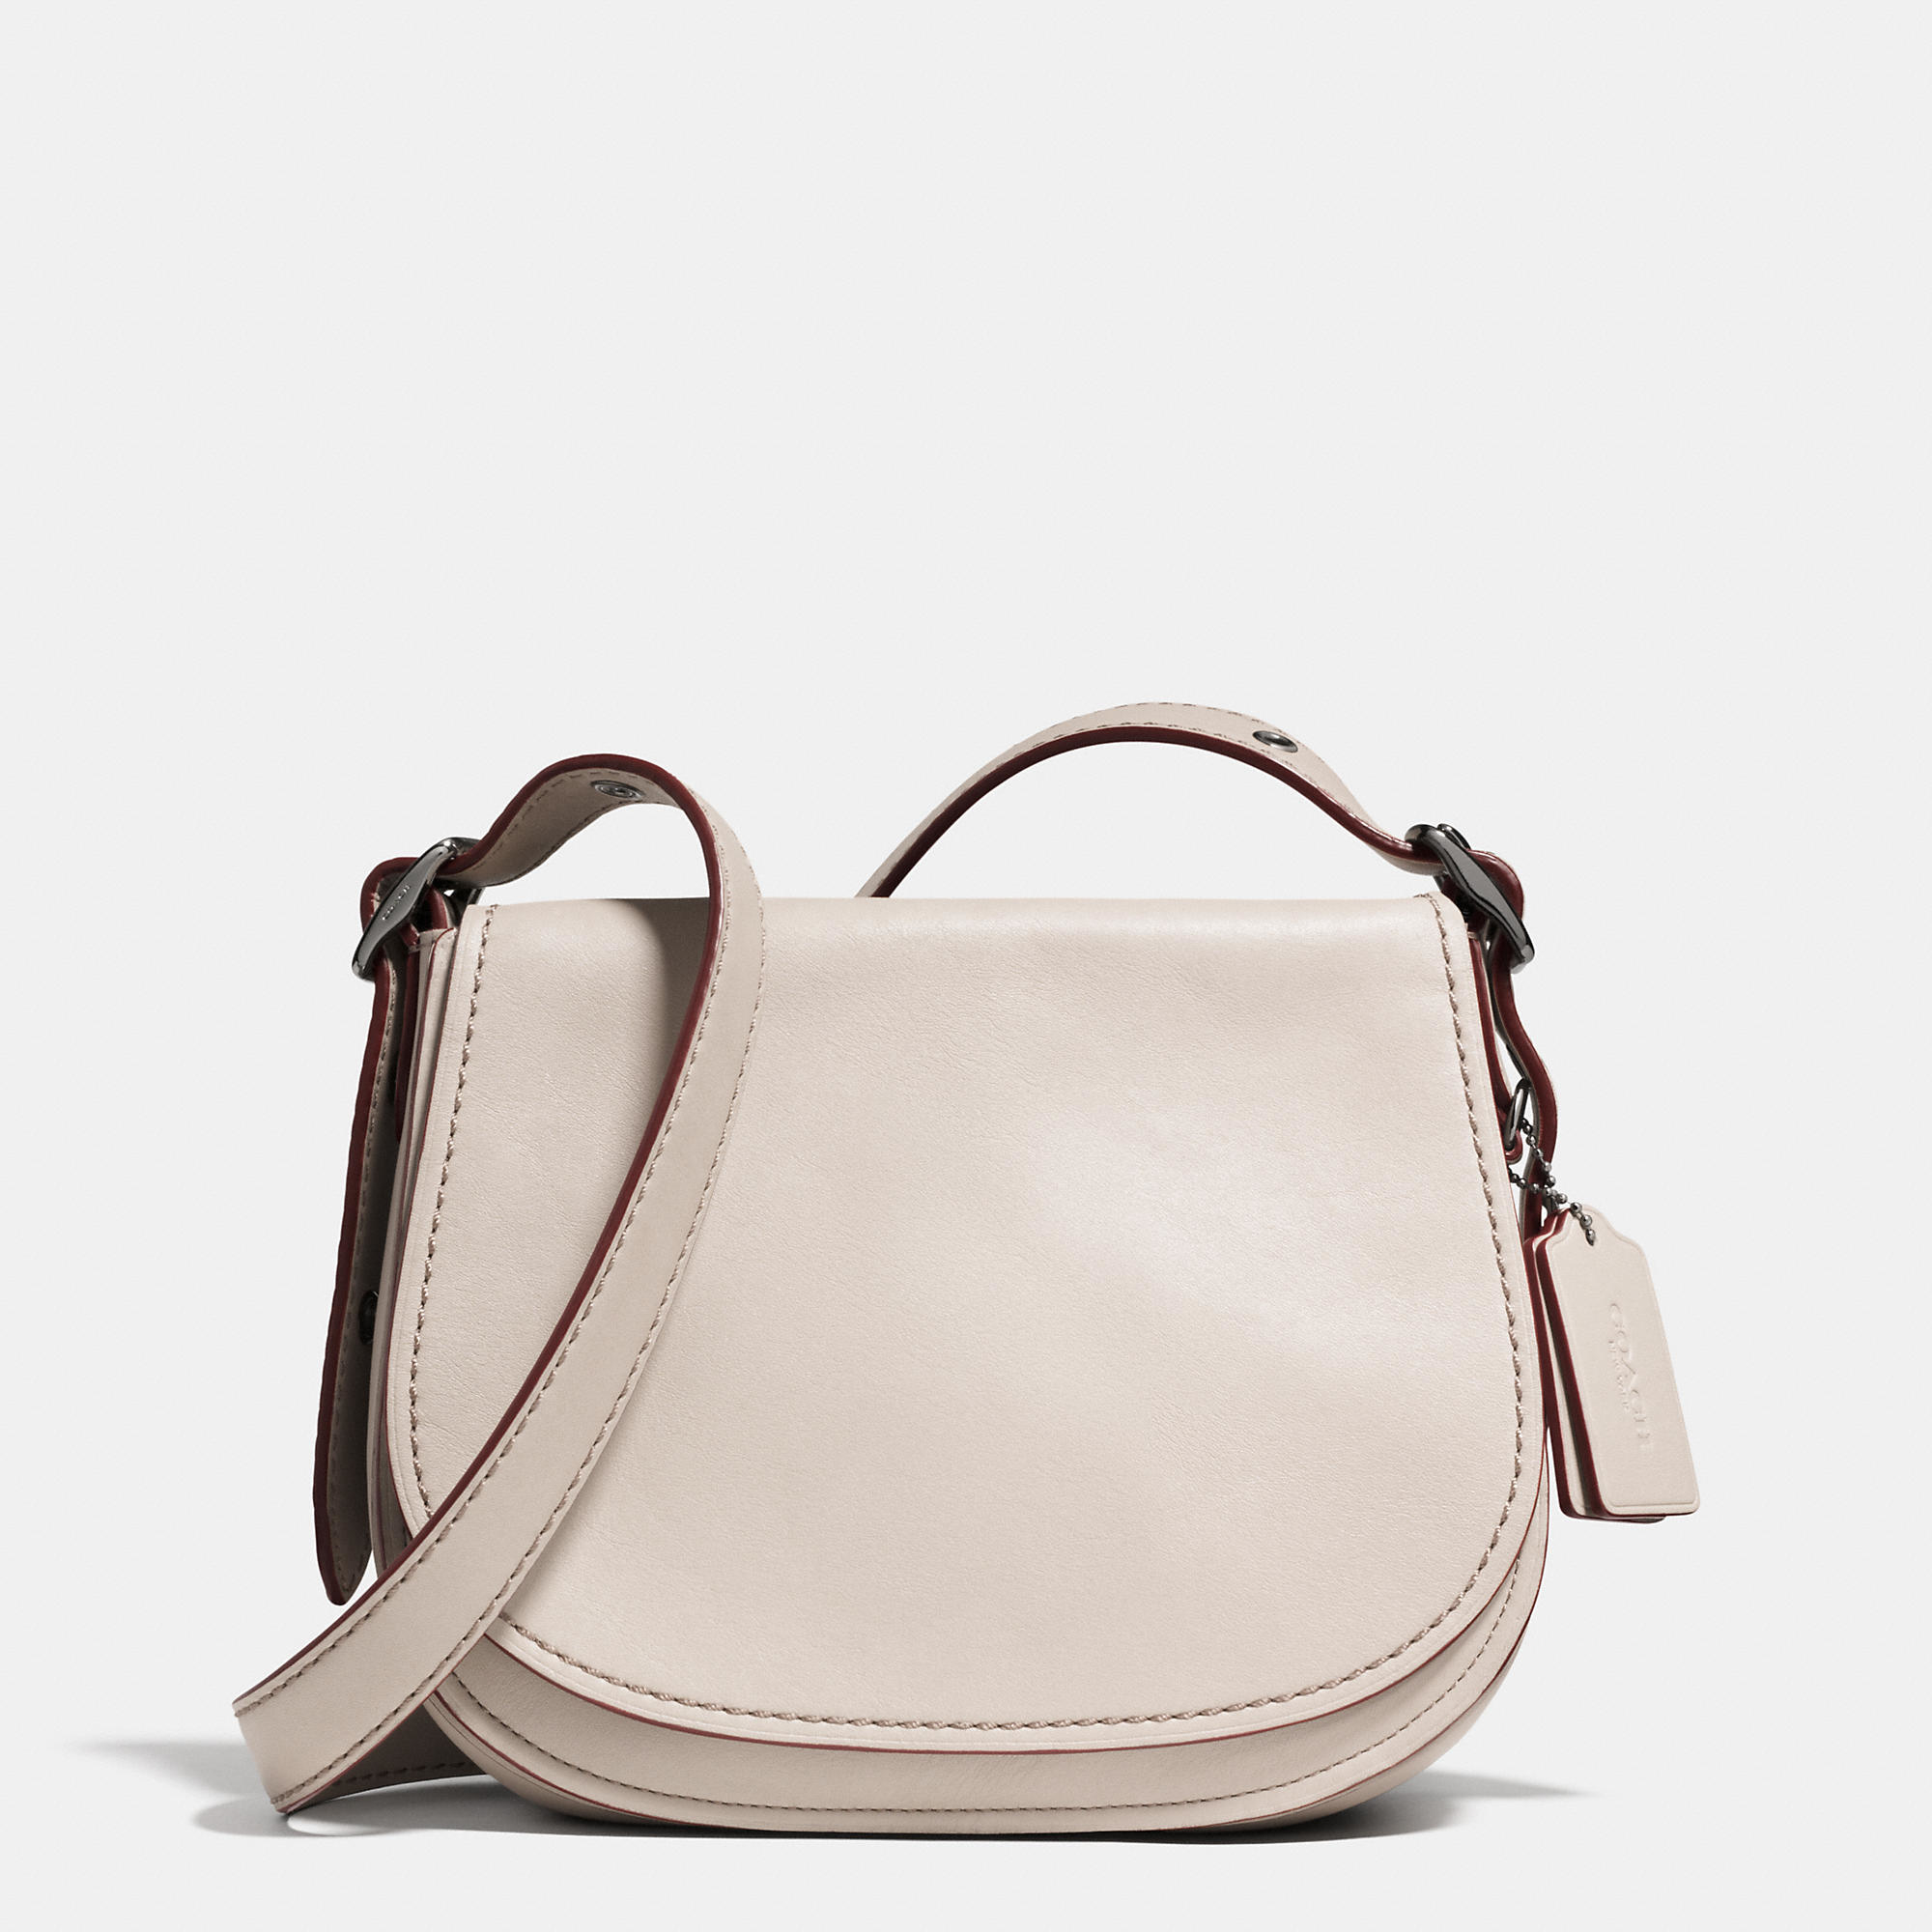 17a05187c21a Lyst - COACH Saddle Bag 23 In Glovetanned Leather in Natural